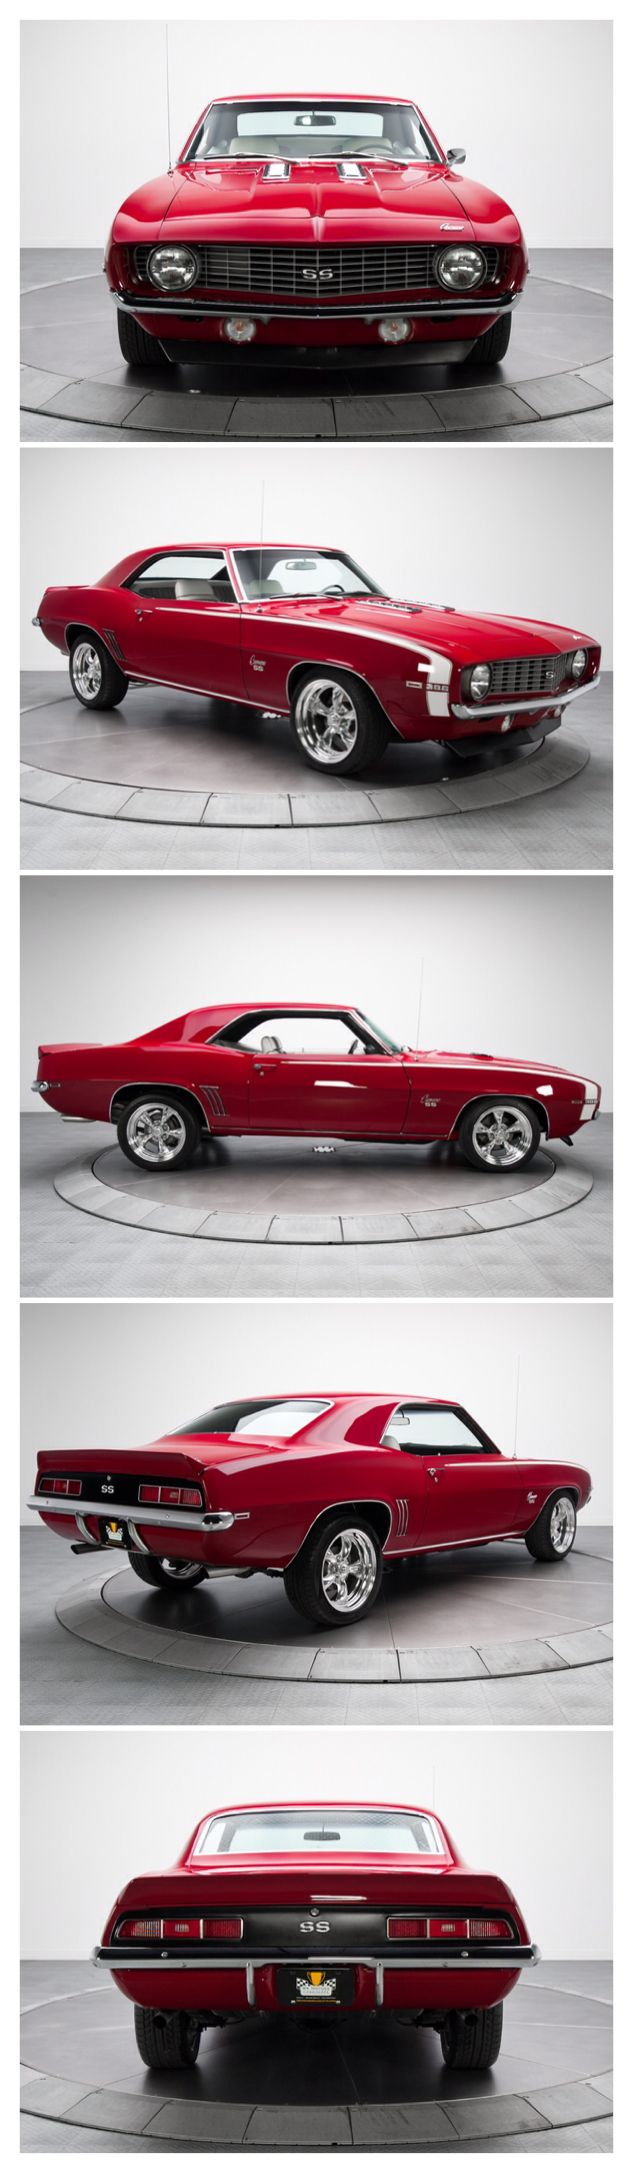 1969 Chevy Camaro SS                                                                                                                                                      More